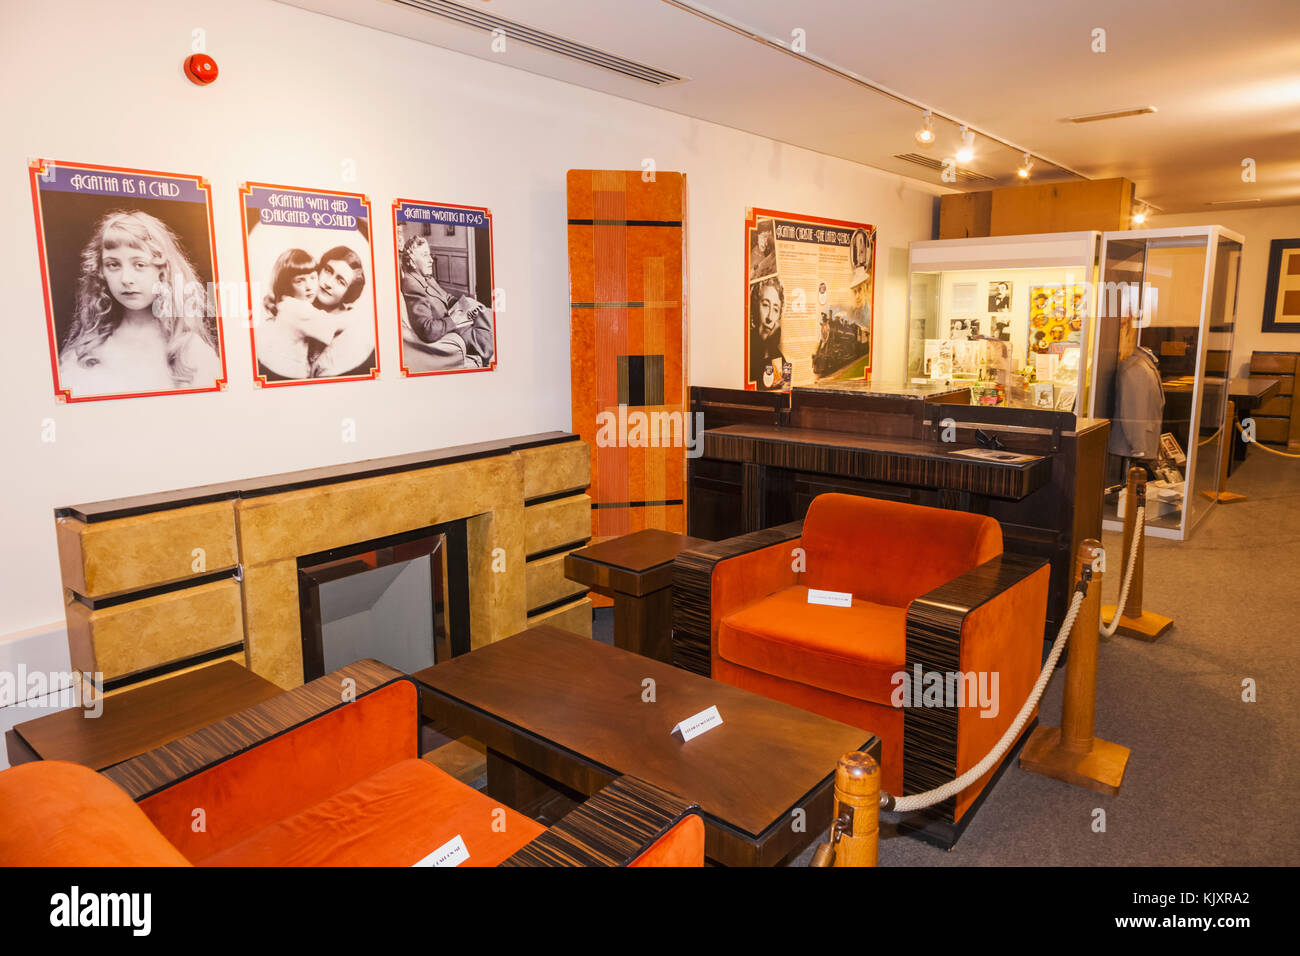 England, Devon, Torquay, Torquay Museum, Agatha Christie Gallery, Display of Furniture from The Poirot TV Series - Stock Image